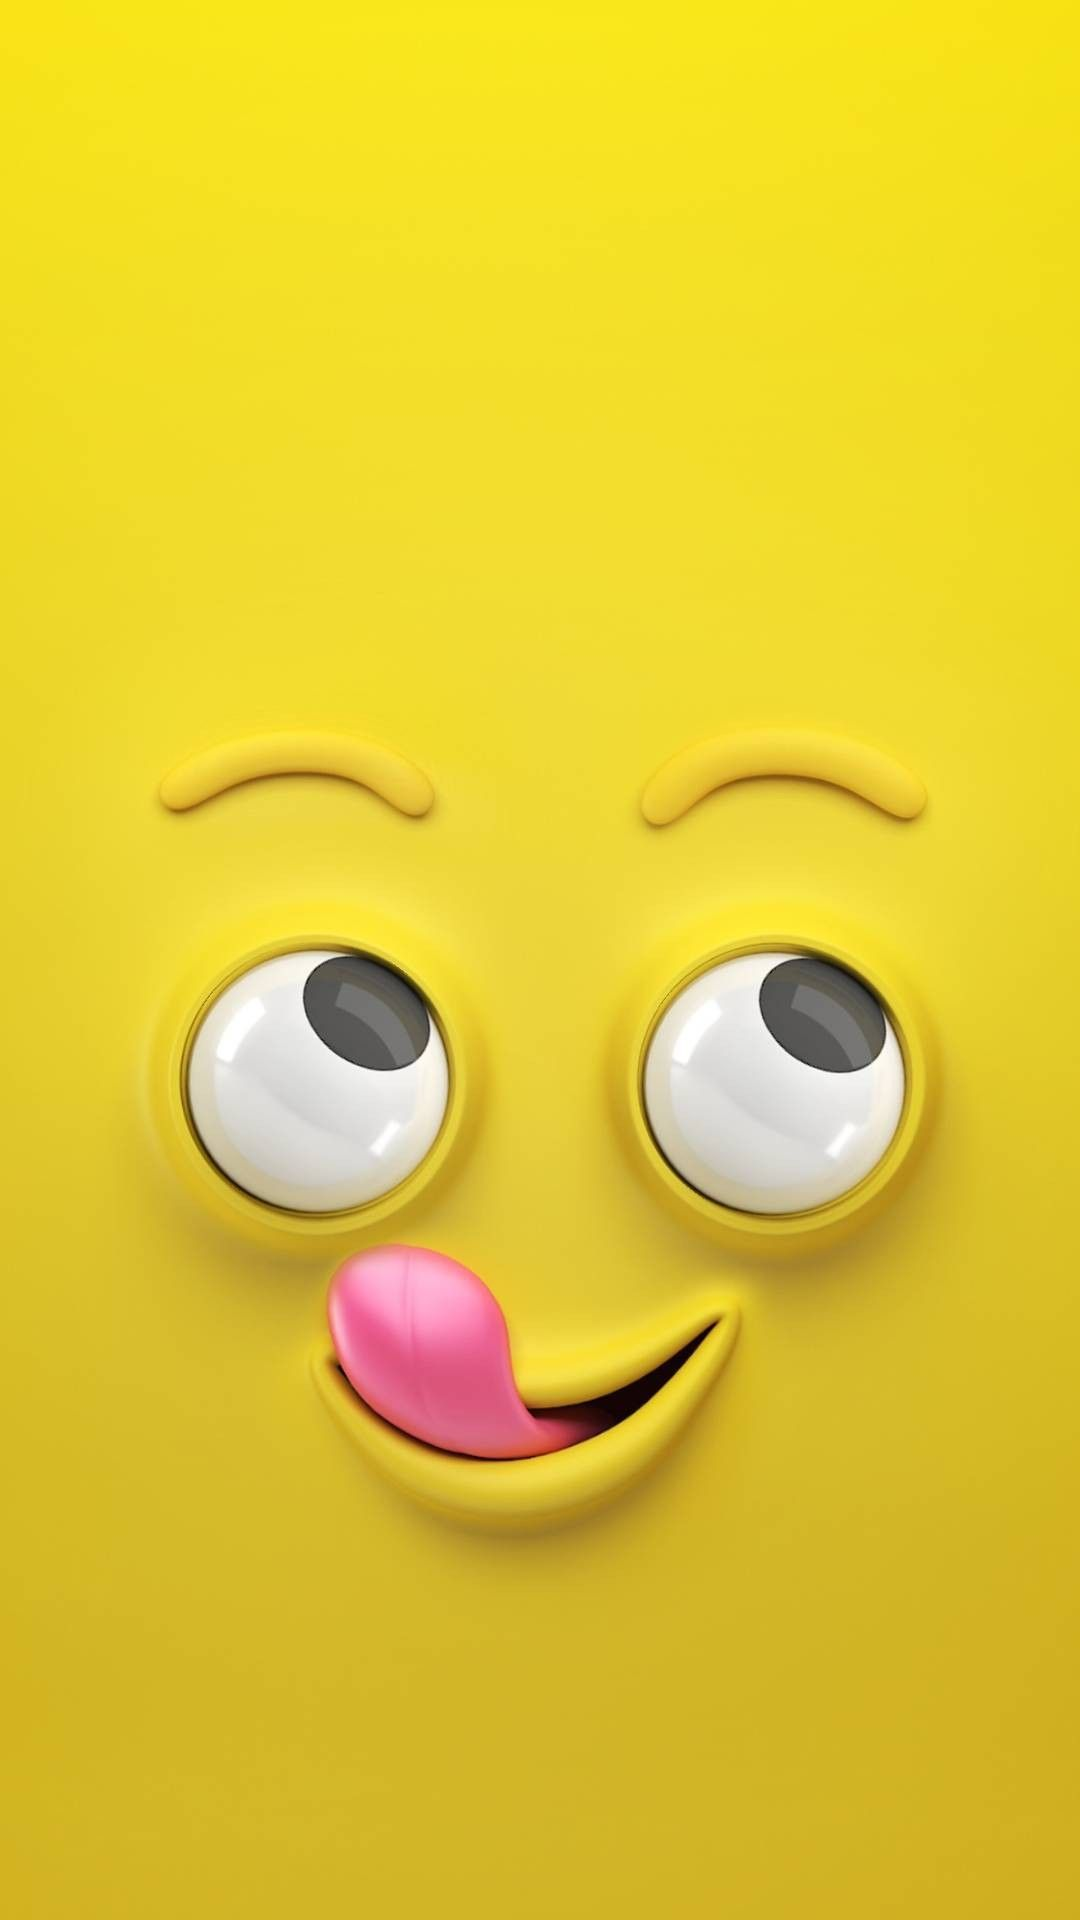 Emoji Images Hd Posted By Zoey Sellers